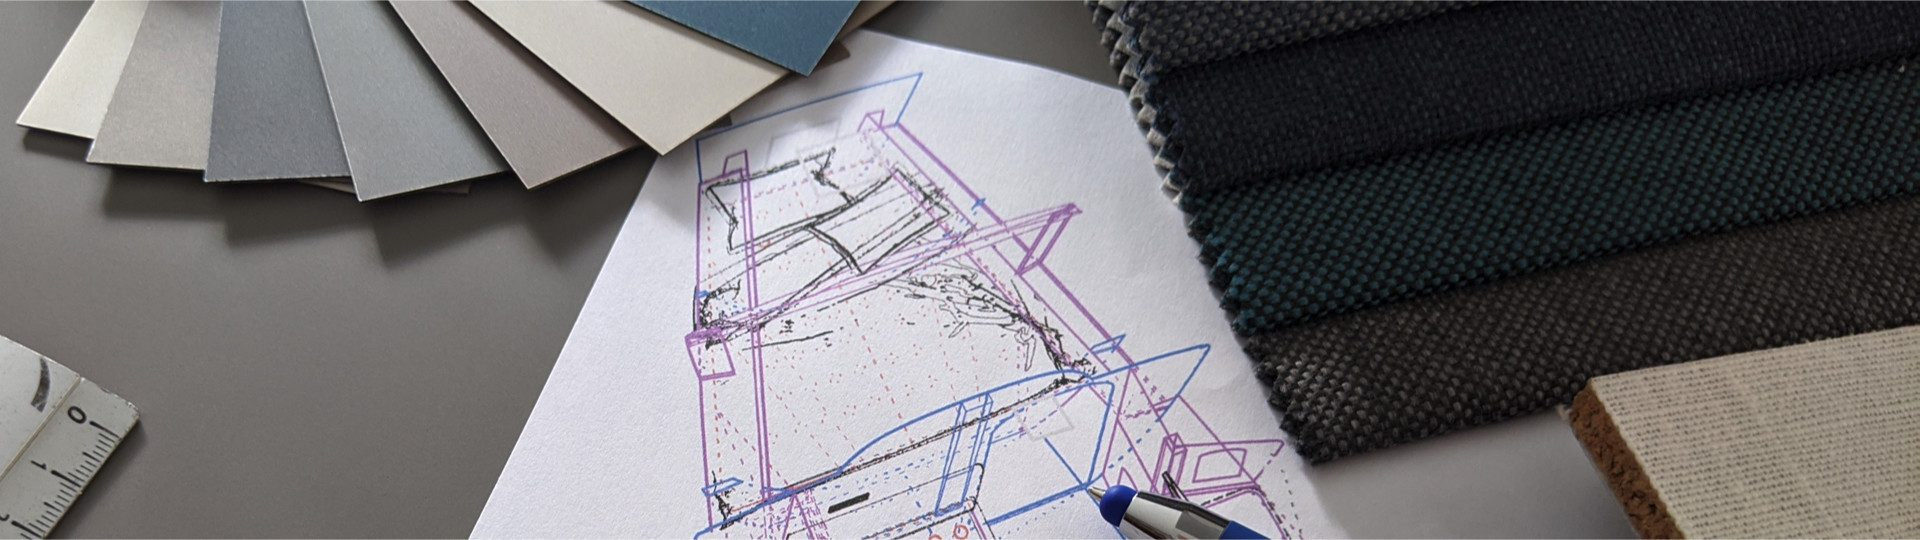 DREAM RACER BOATS consultants-assisting-support-design-building-process-interior-layout-boat-yacht-opg9w8etyu8vvsa3s360klbu20kp99v5xczy0ja0pk Professionals